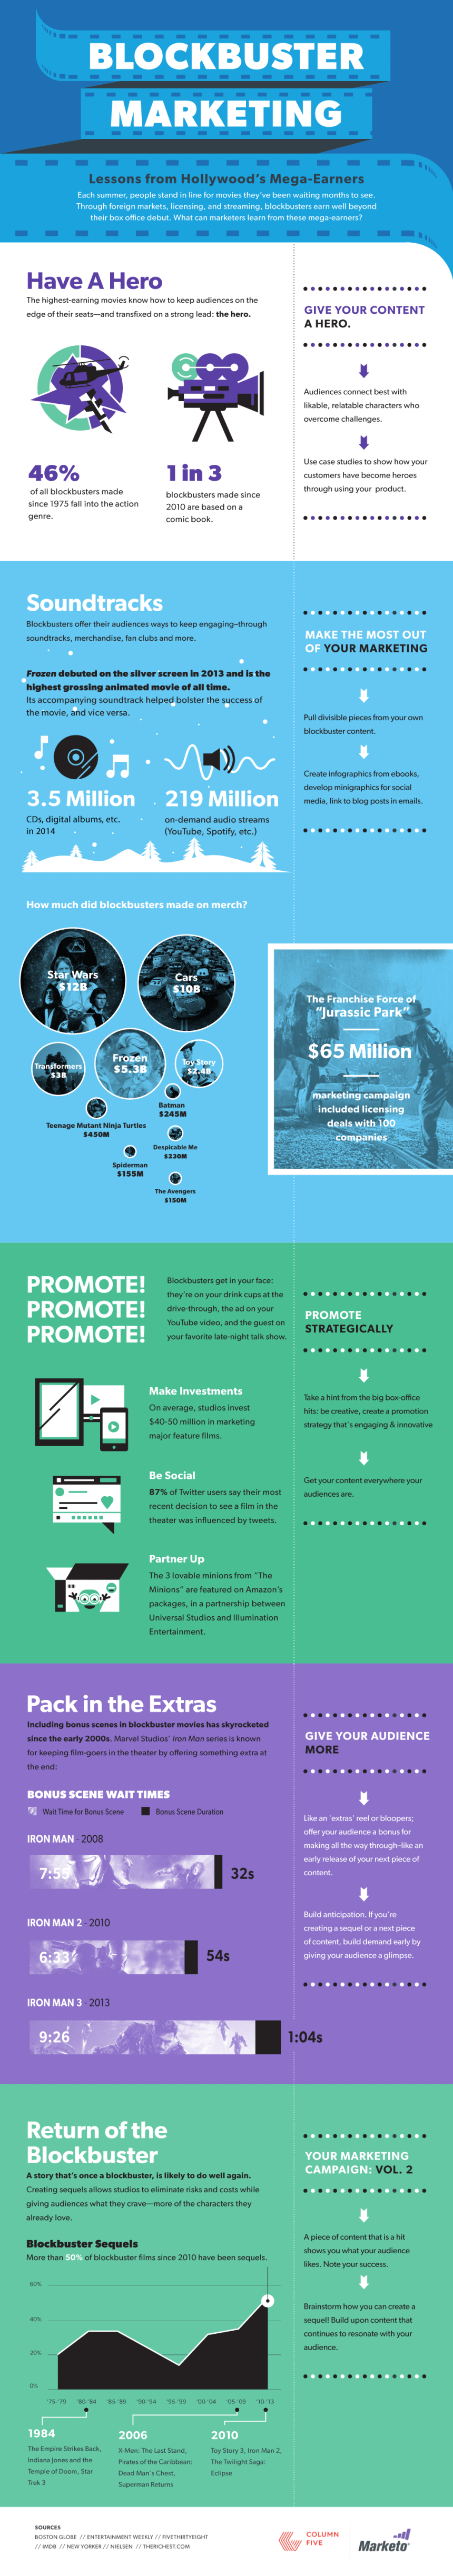 [Infographic] Blockbuster Marketing: Lessons from Hollywood's Mega-Earners